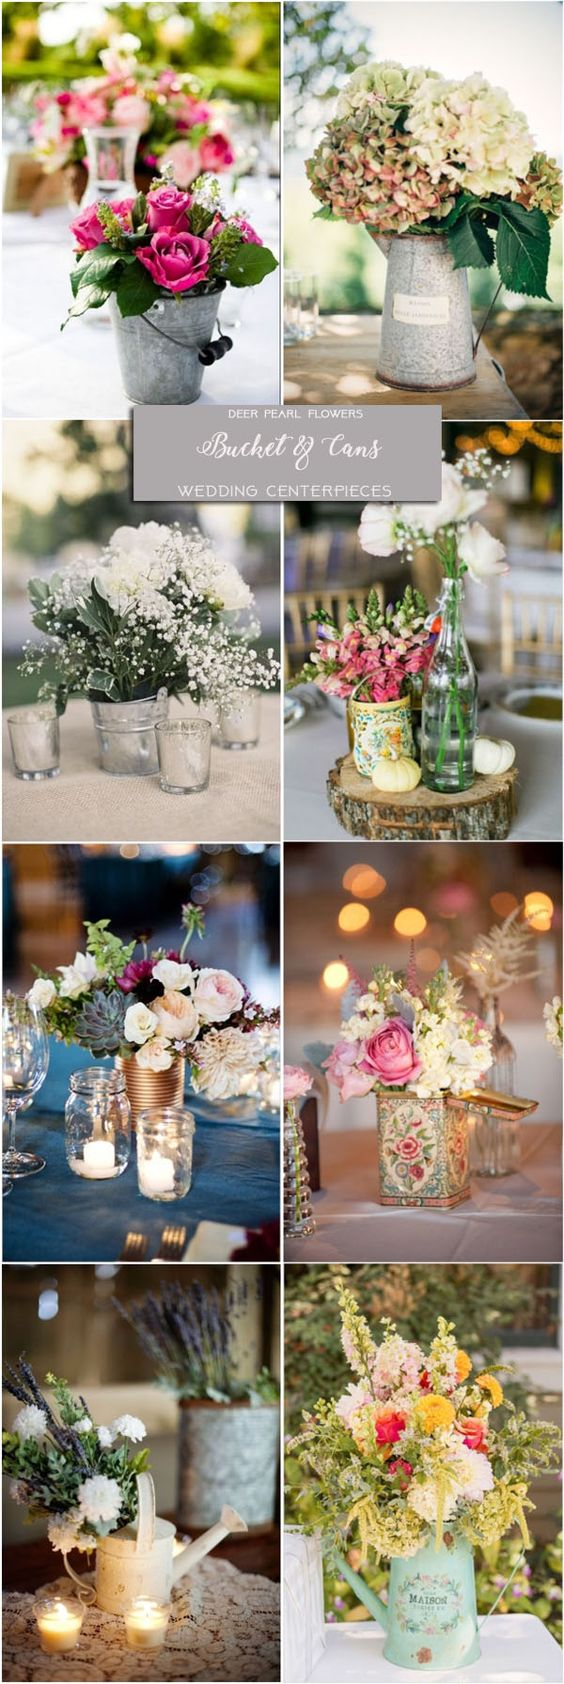 Rustic farm bucket tin-can and watering-can wedding centerpieces / http://www.deerpearlflowers.com/wedding-centerpiece-ideas/2/